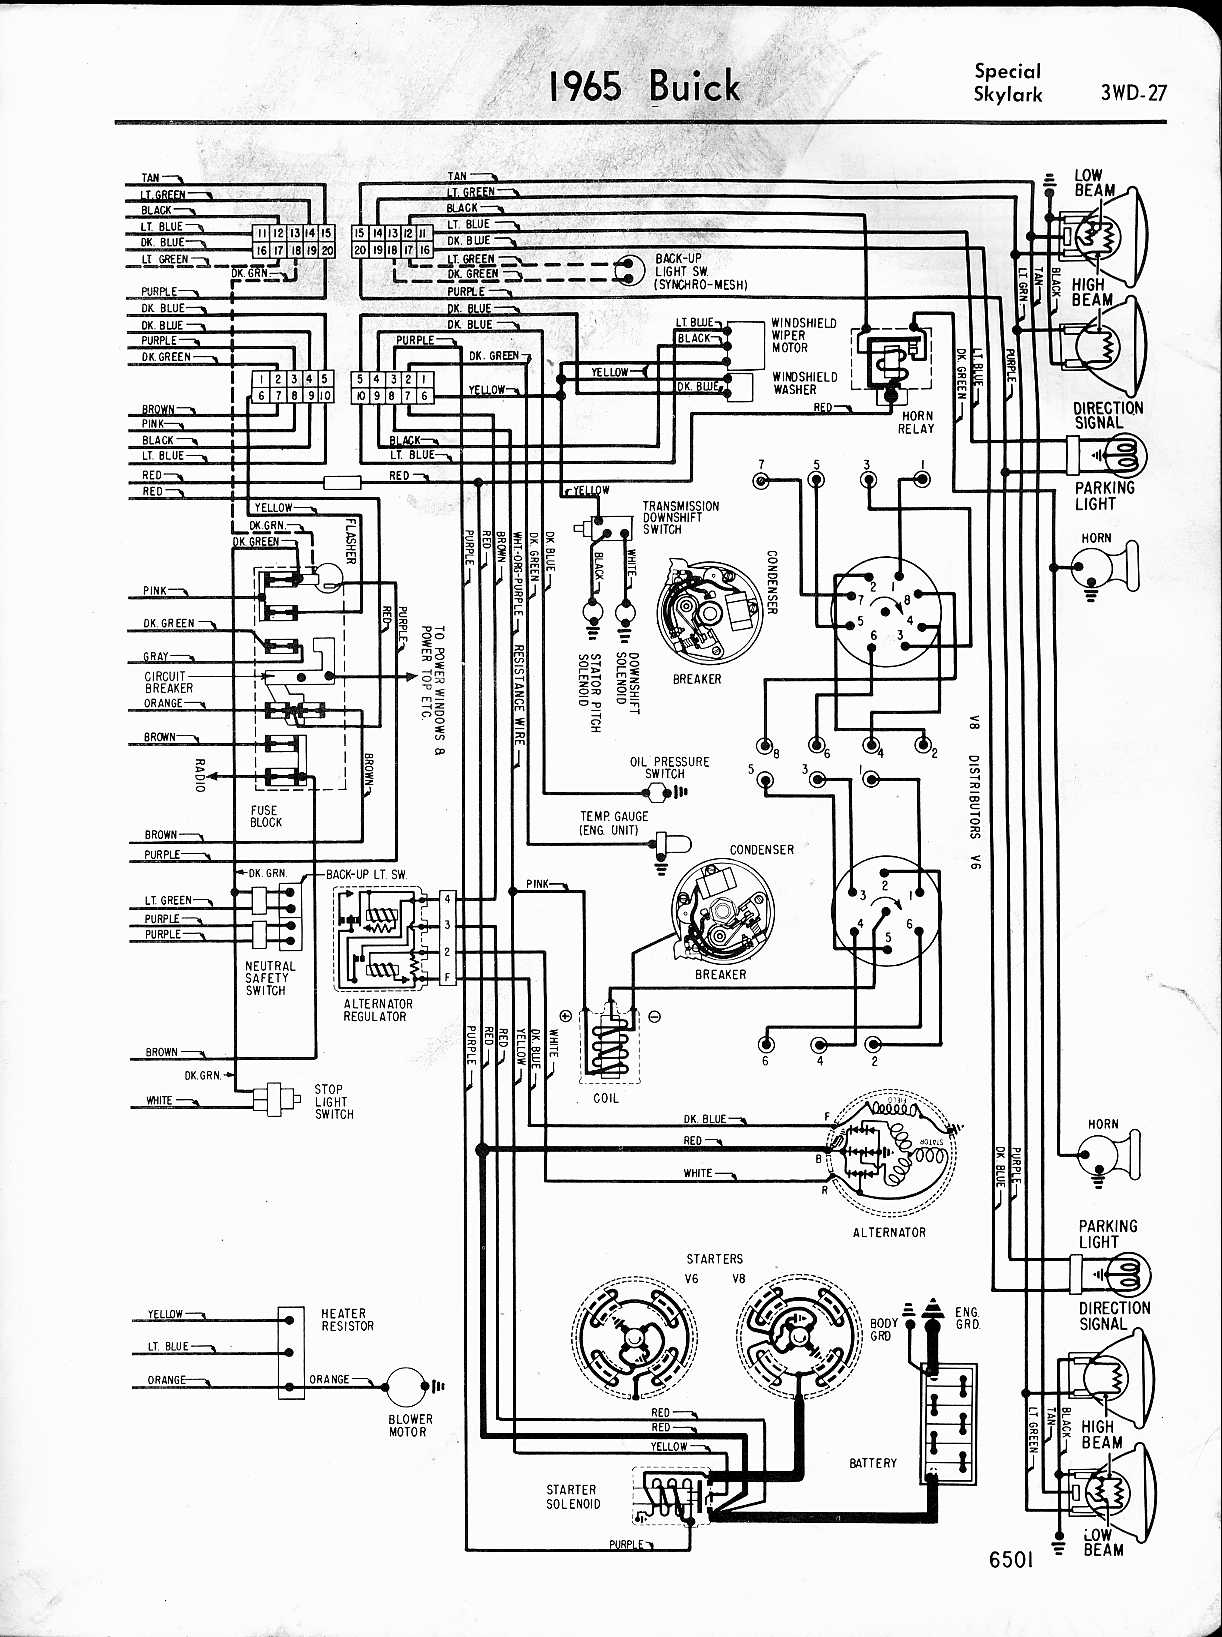 Buick Skylark Fuse Box Wiring Diagrams 1964 Mustang Diagram Heater Core